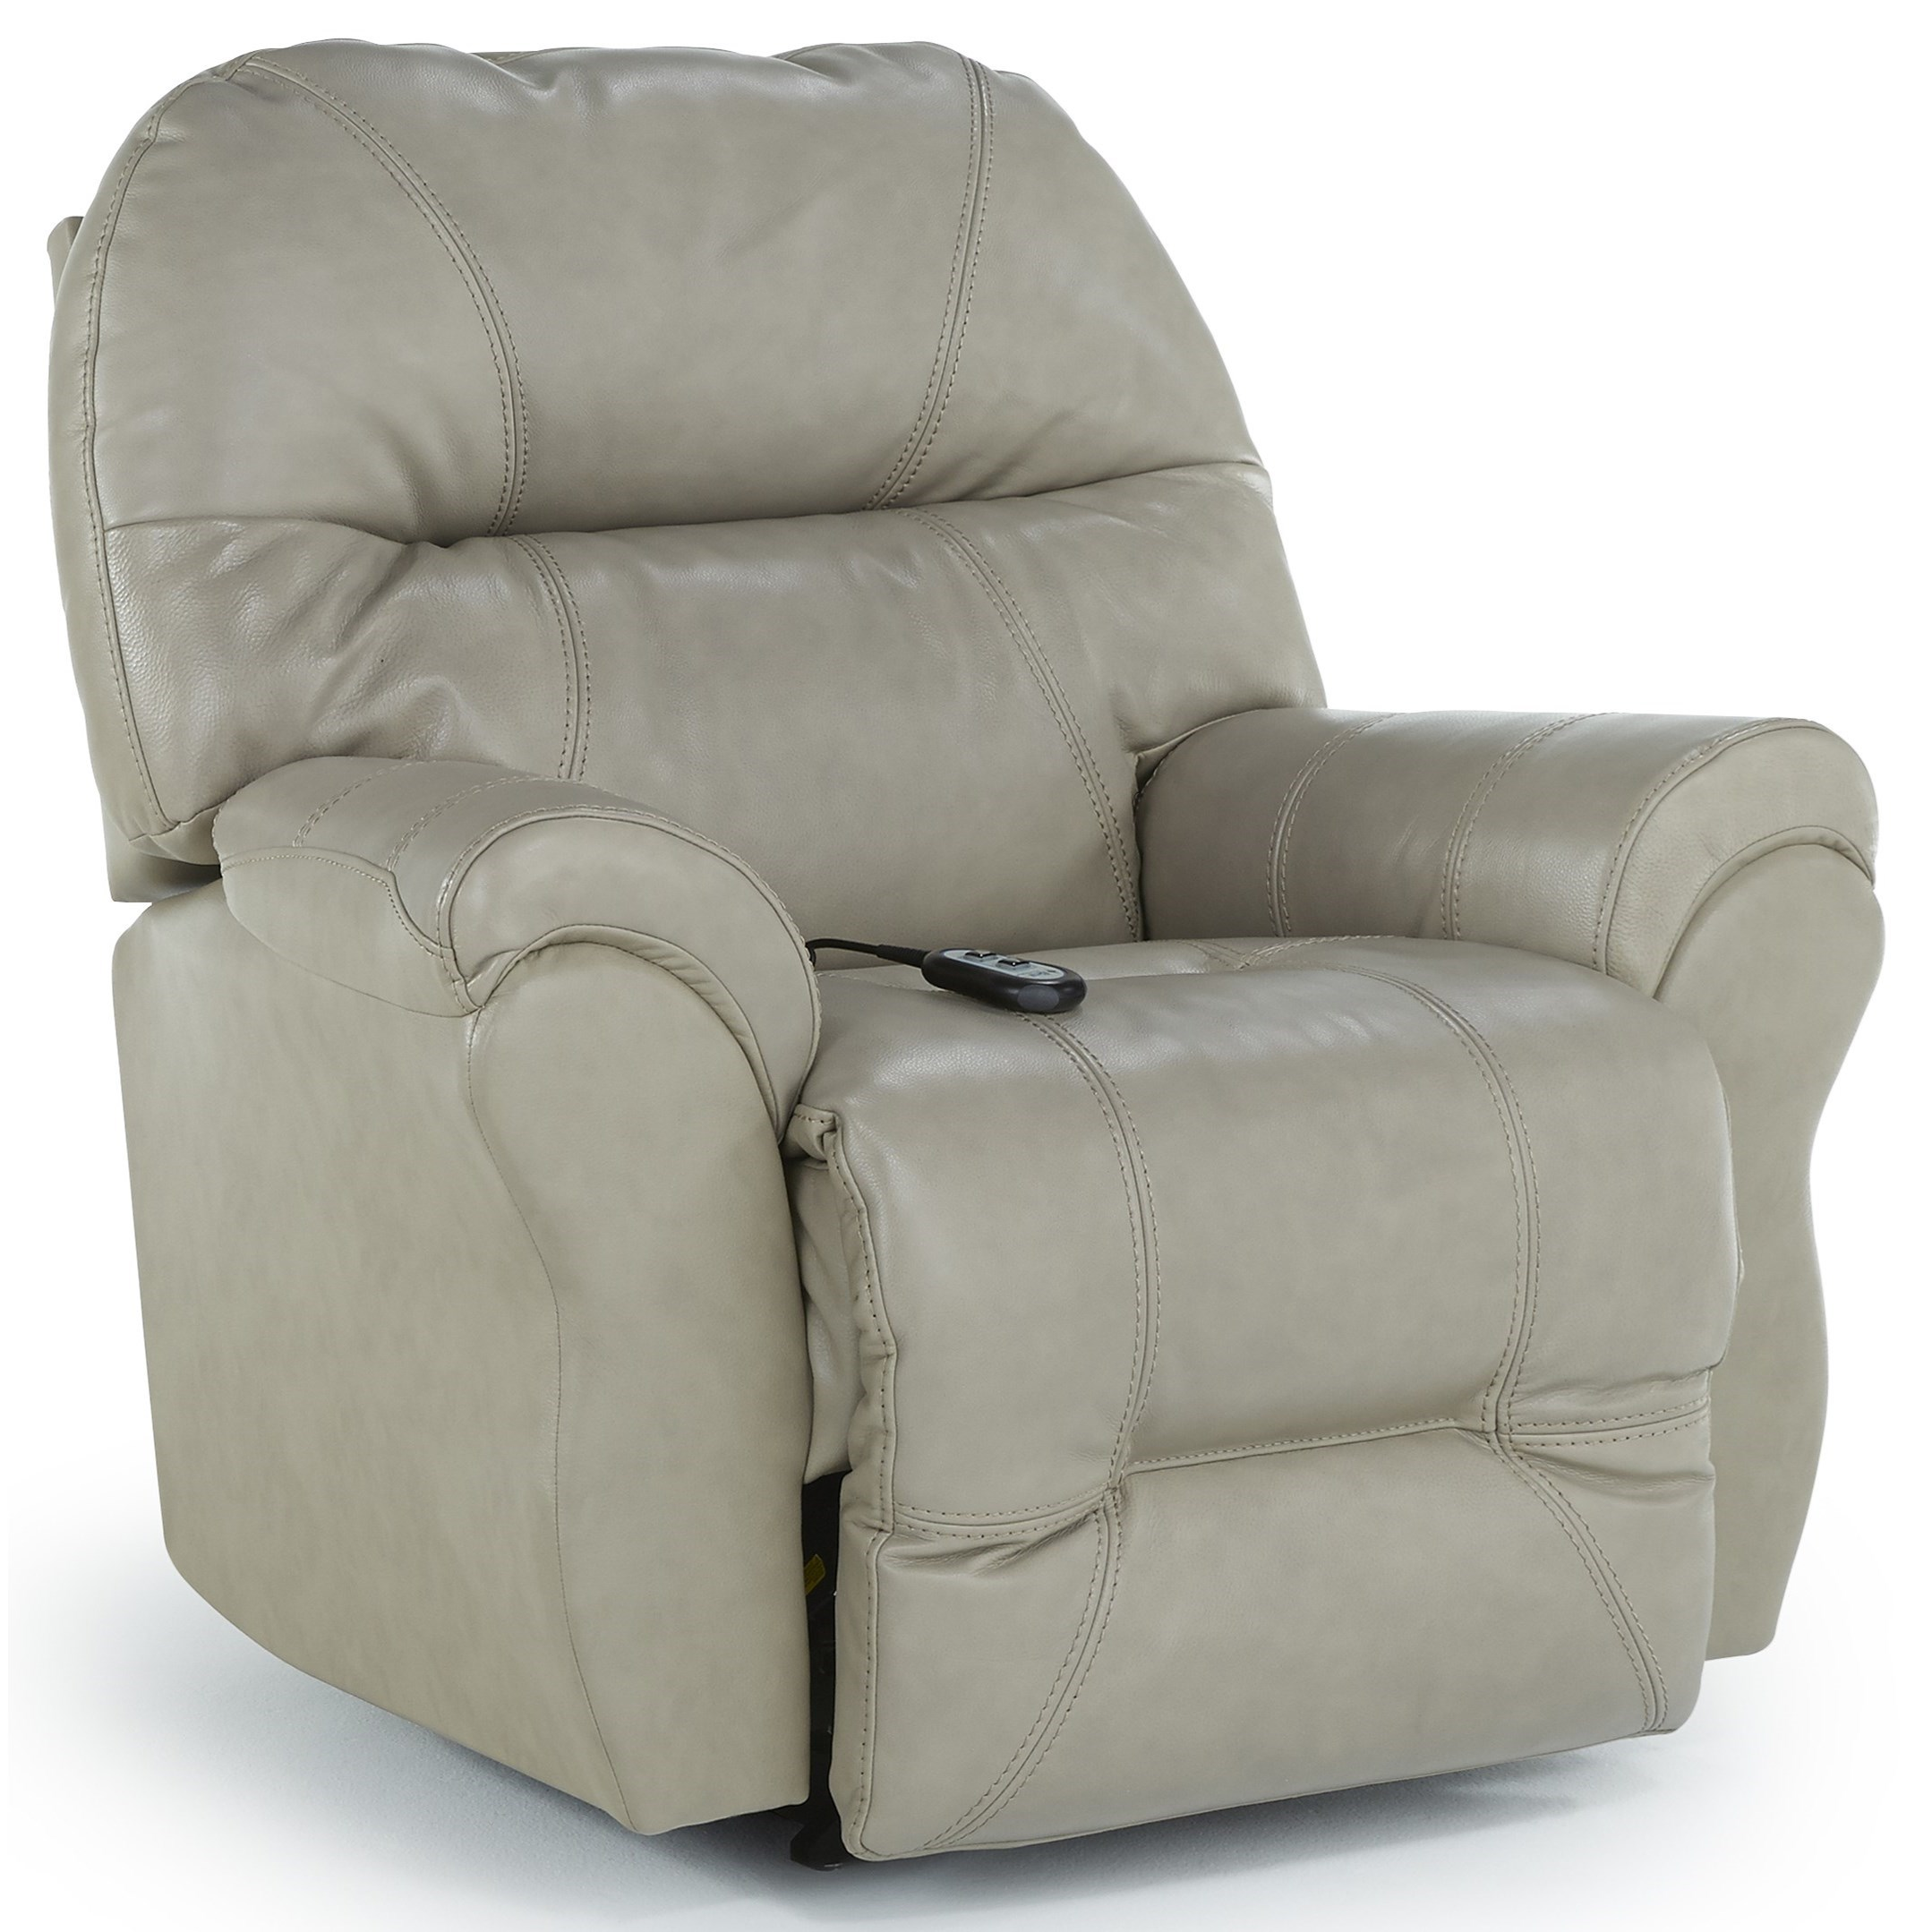 Medium Recliners Bodie Power Rocker Recliner by Best Home Furnishings at Baer's Furniture